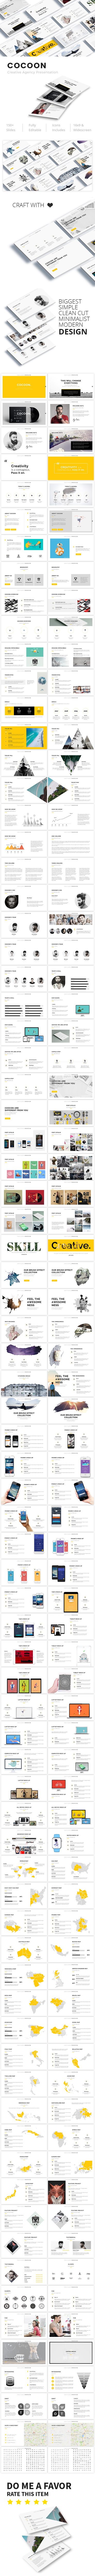 Cocoon - Creative Powerpoint Template - Creative PowerPoint Templates